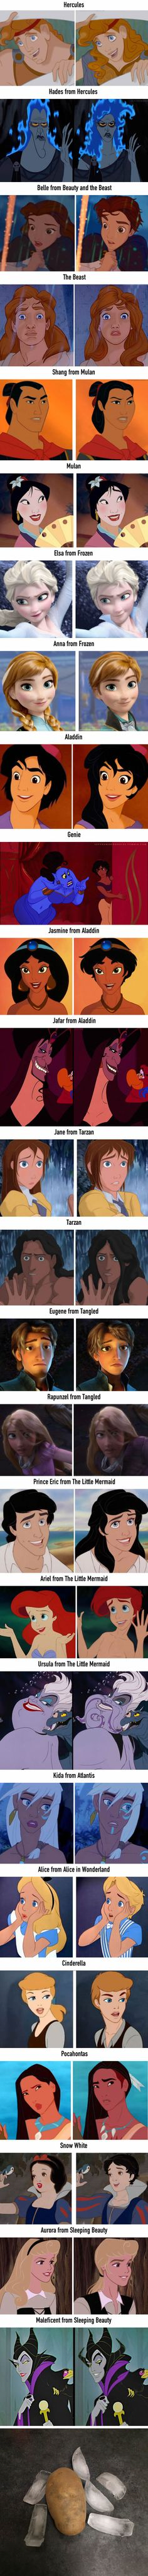 26 gender-bending Disney characters